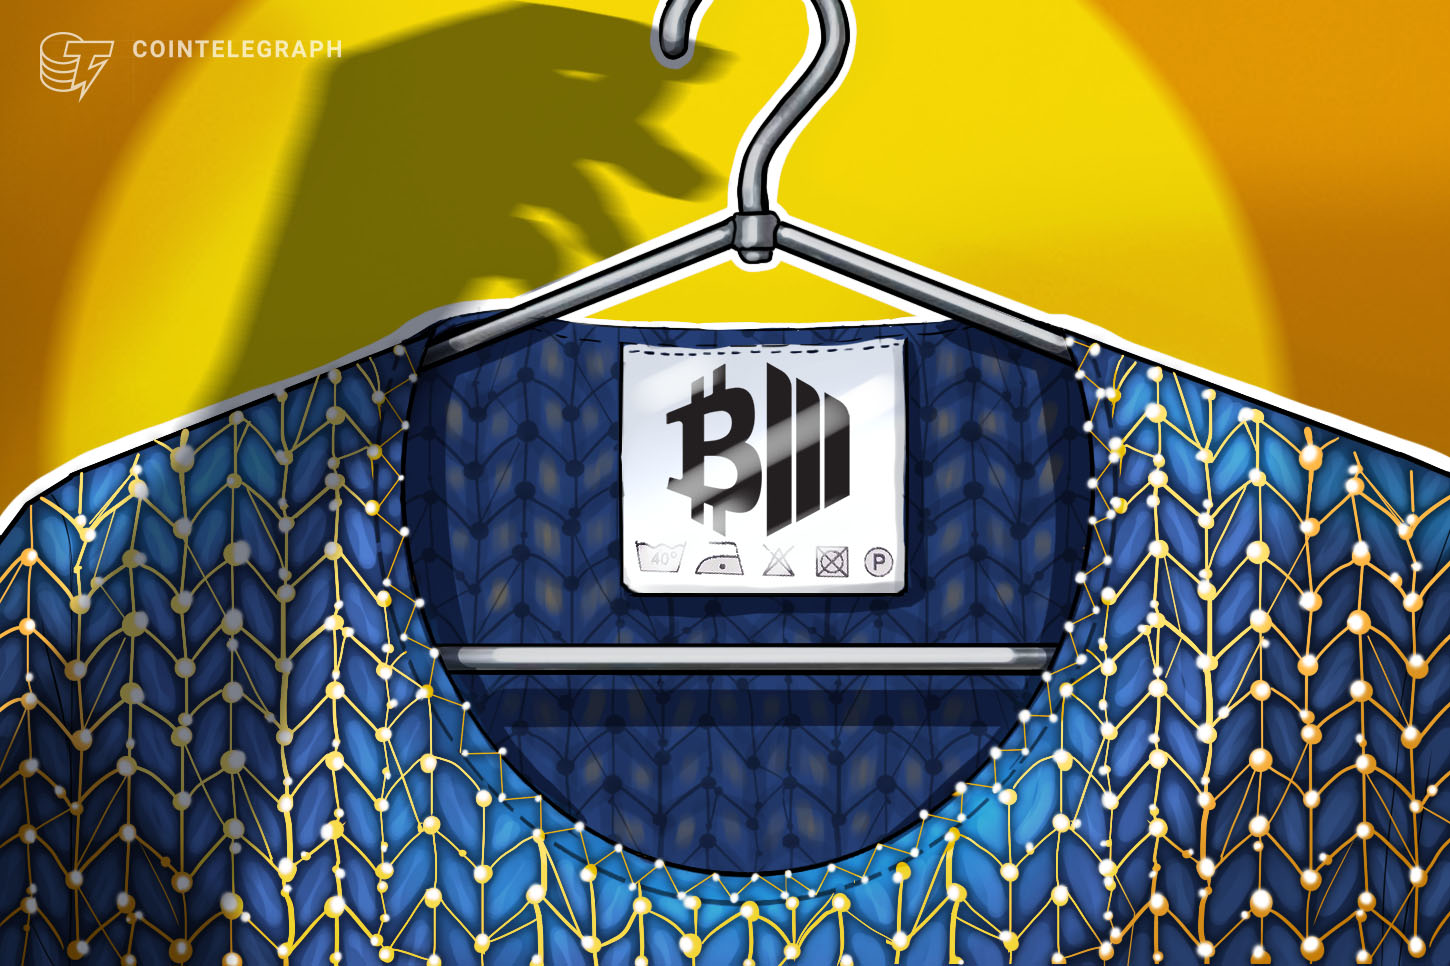 Bitcoin Movement launches collection of blockchain-backed streetwear designed by Zuby